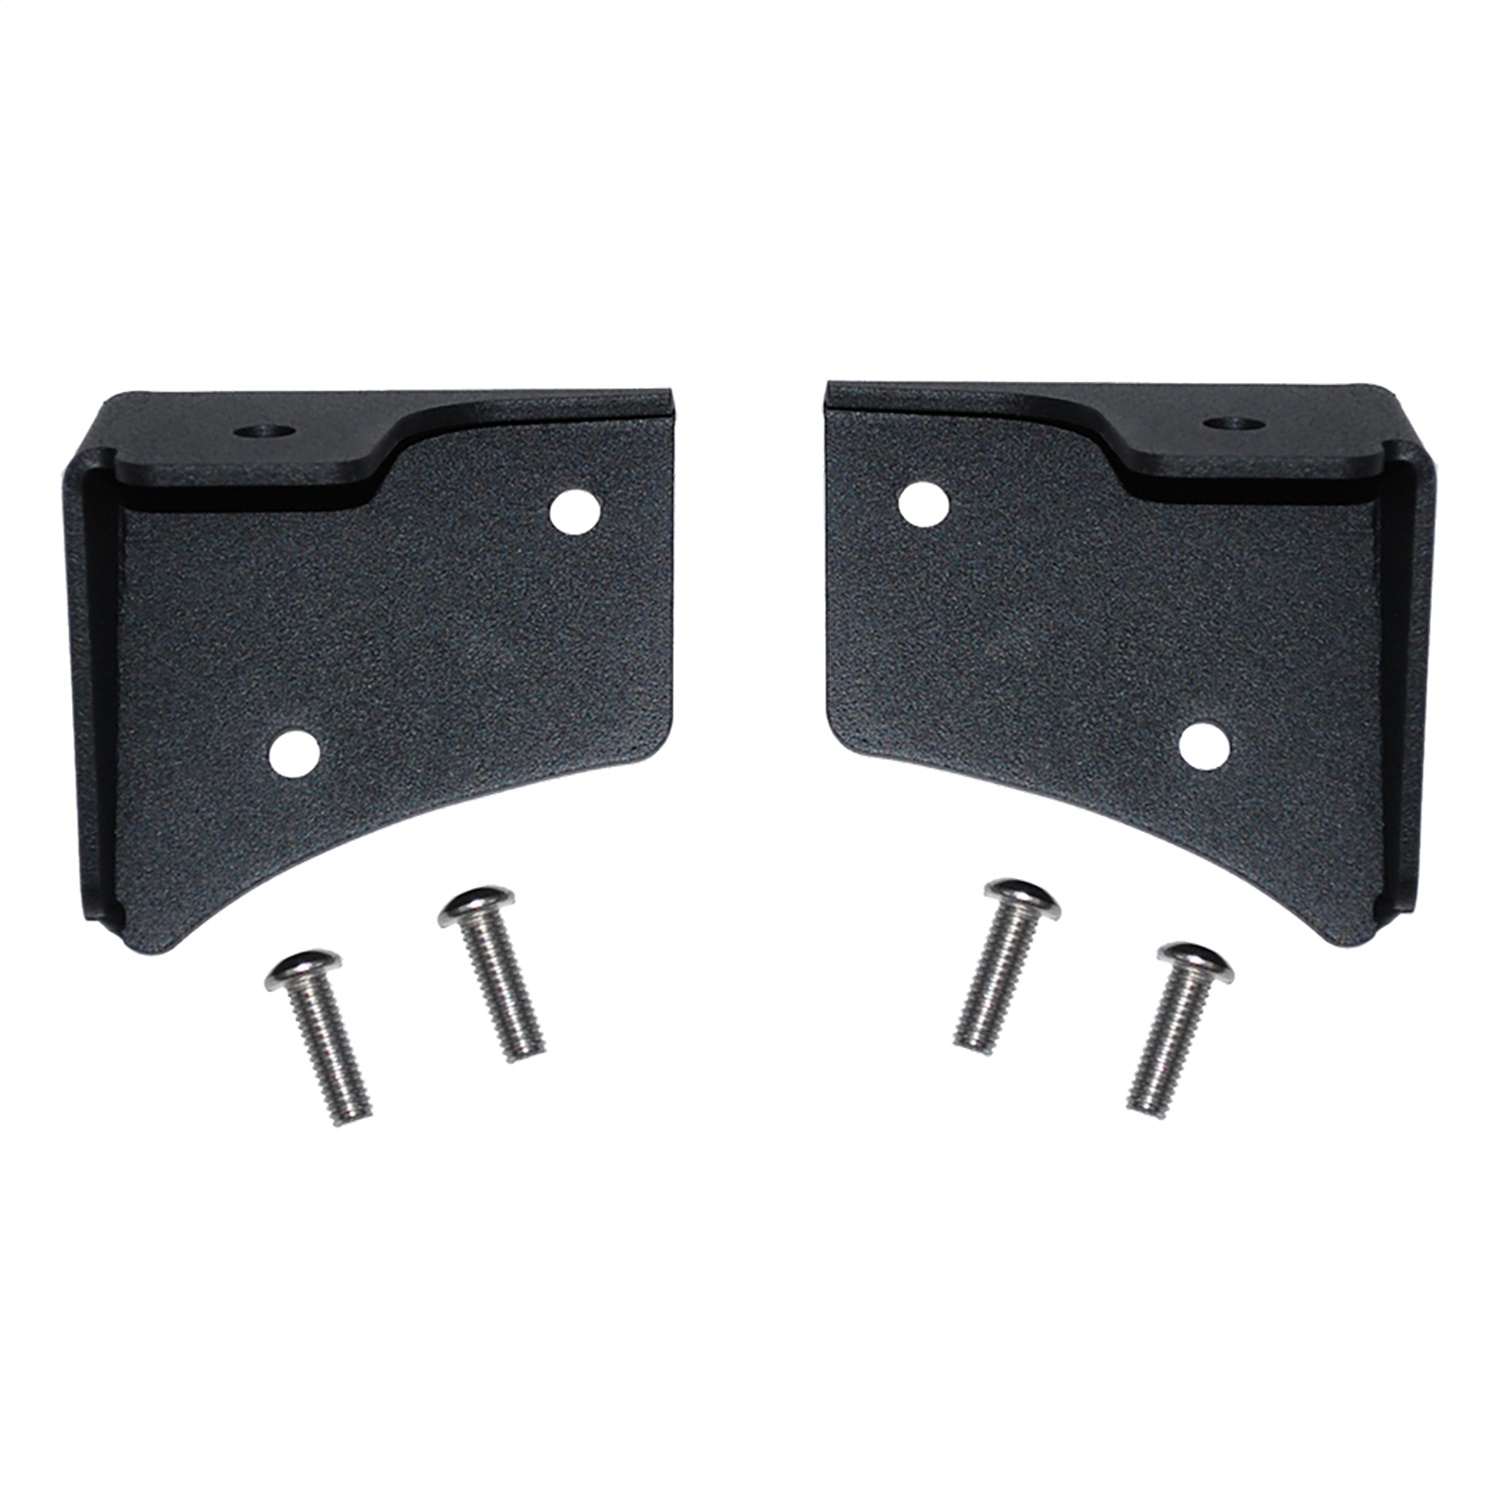 MBRP Exhaust Exhaust 131043 Windshield Light Bracket  2 Brackets  Powder Coated Black at Sears.com